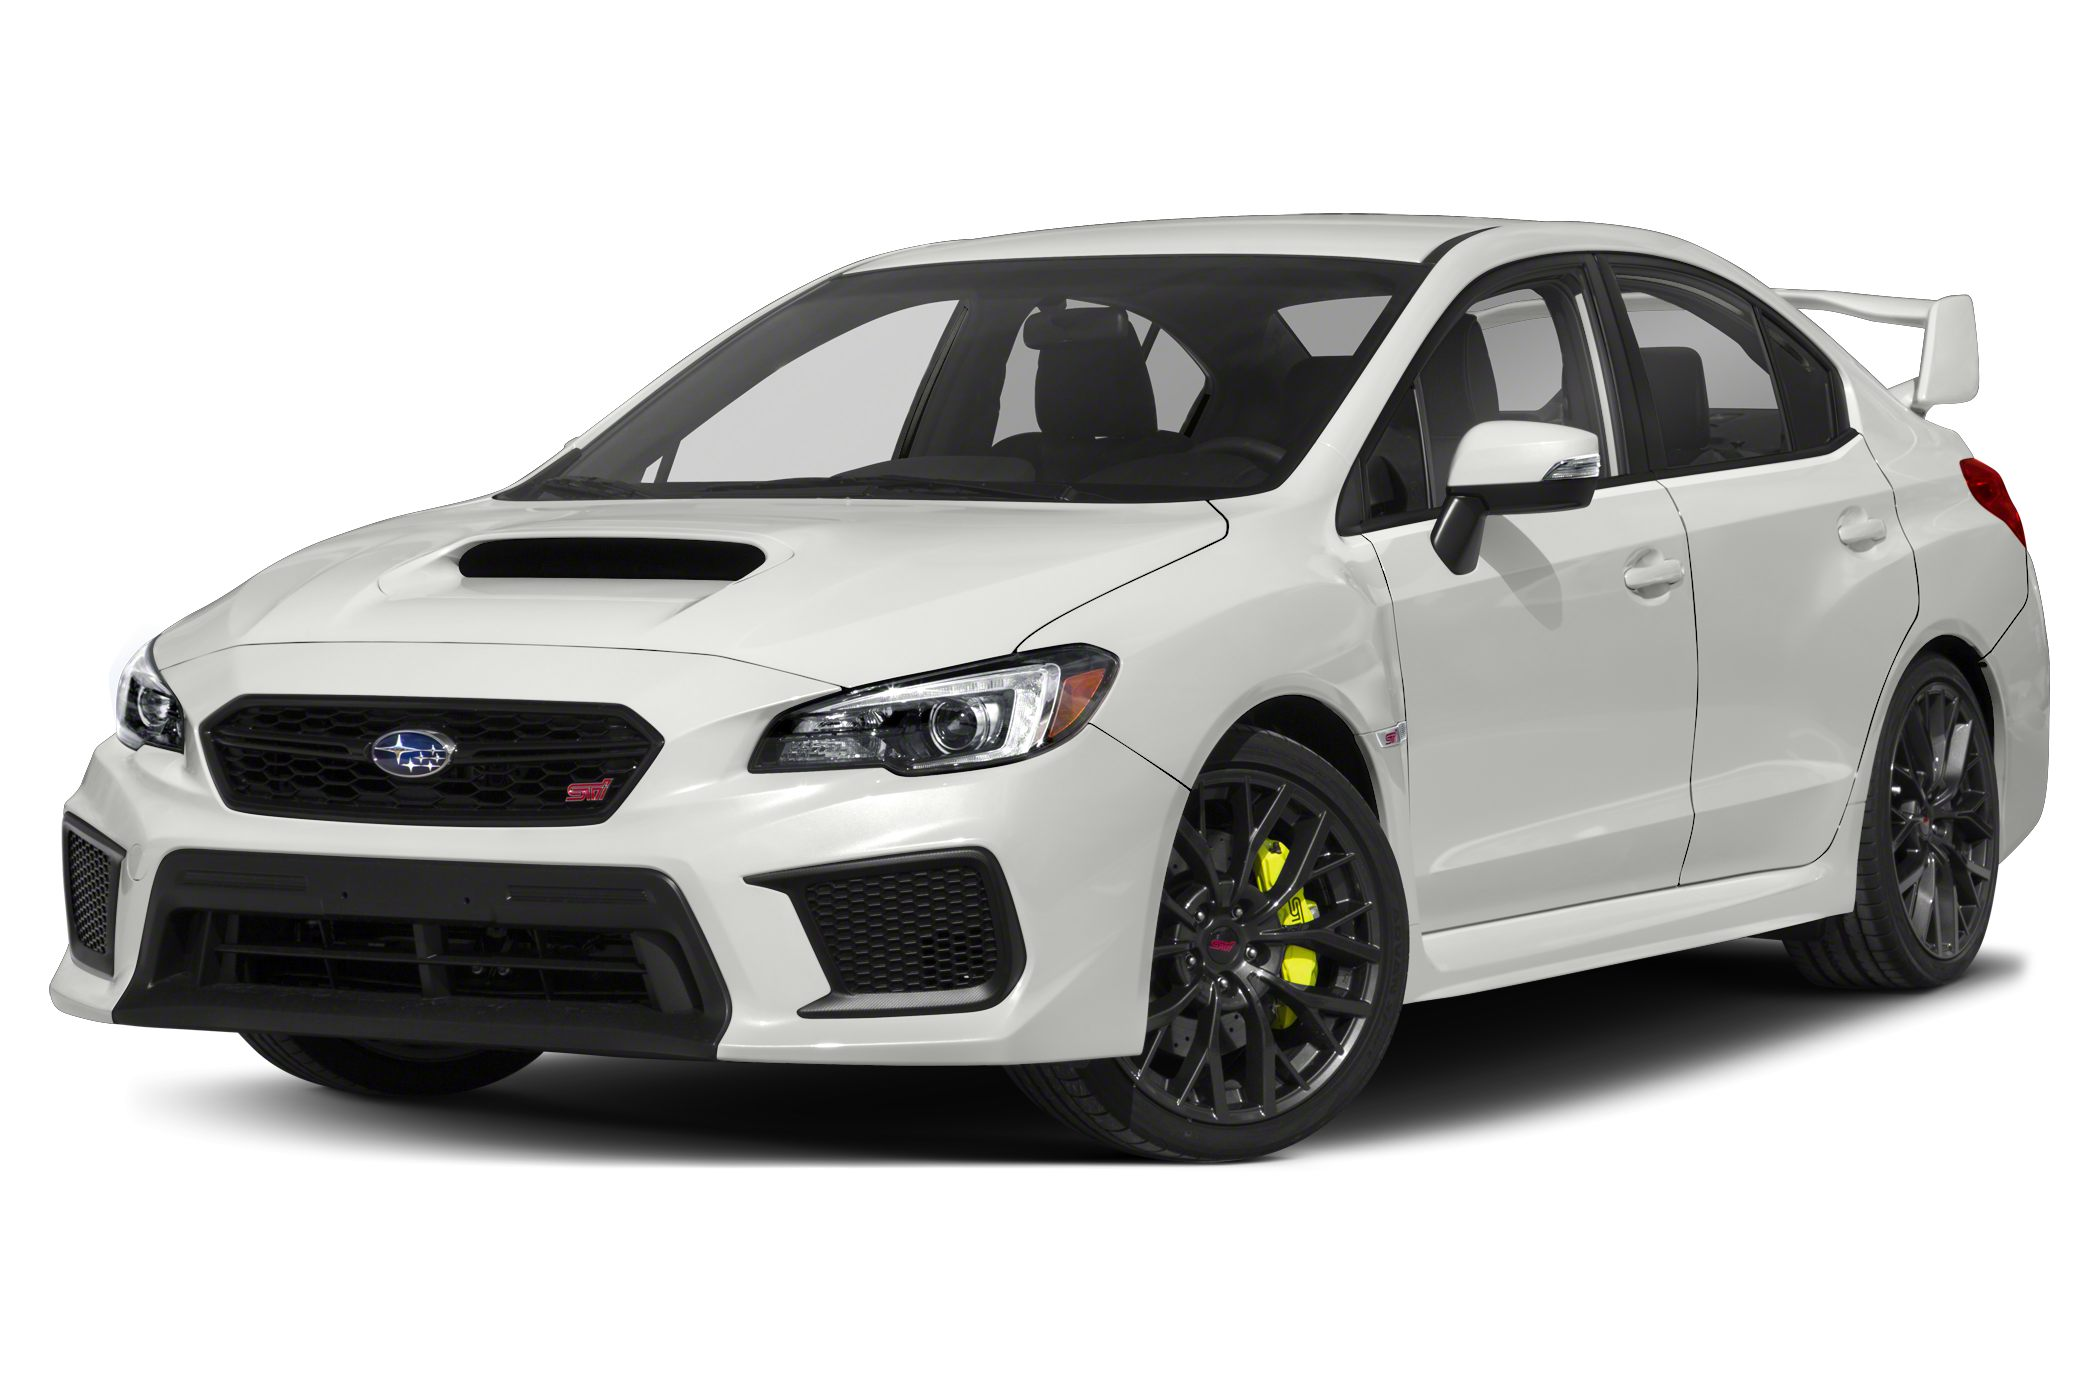 2019 Subaru Wrx Sti Deals Prices Incentives Leases Overview